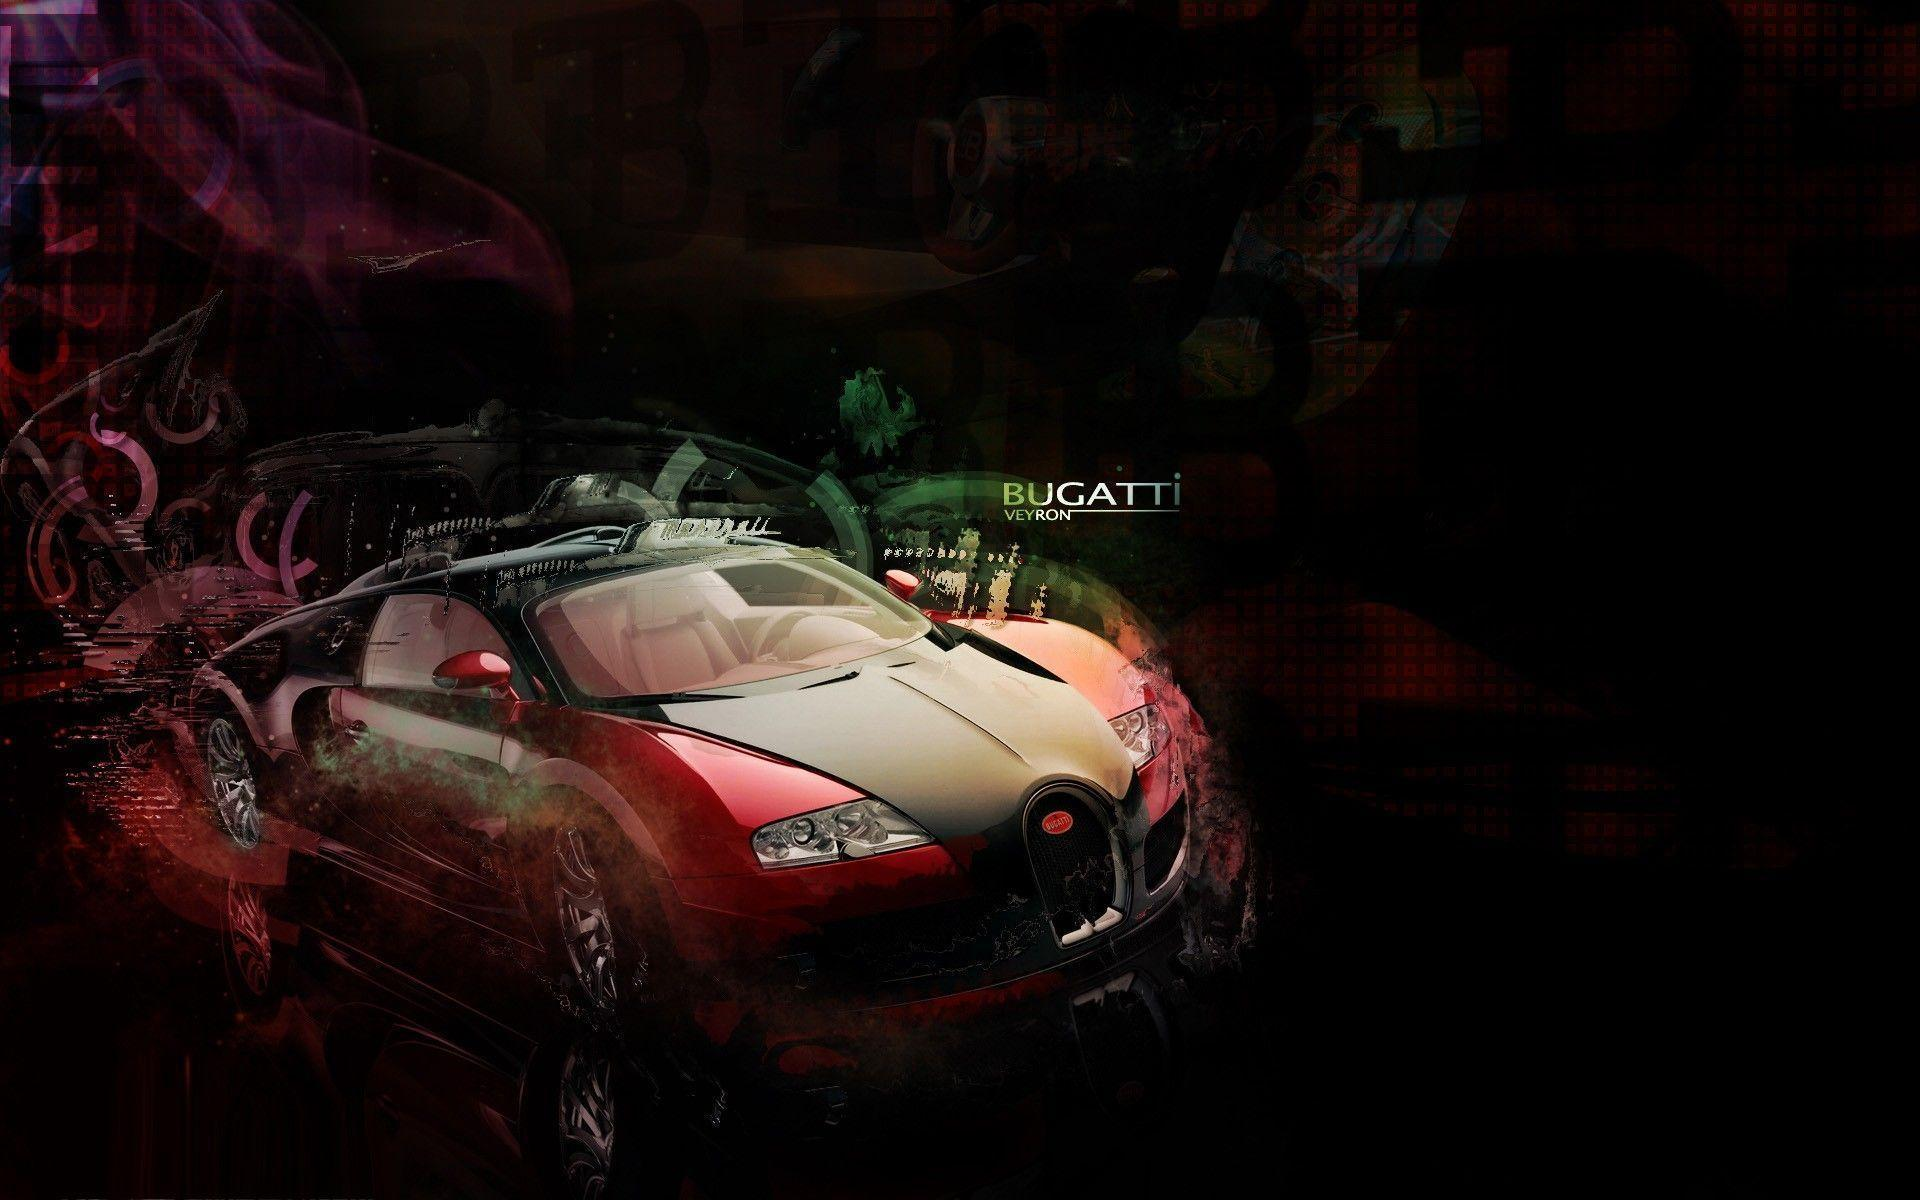 Bugatti Veyron Supercar Red Exclusive HD Wallpapers